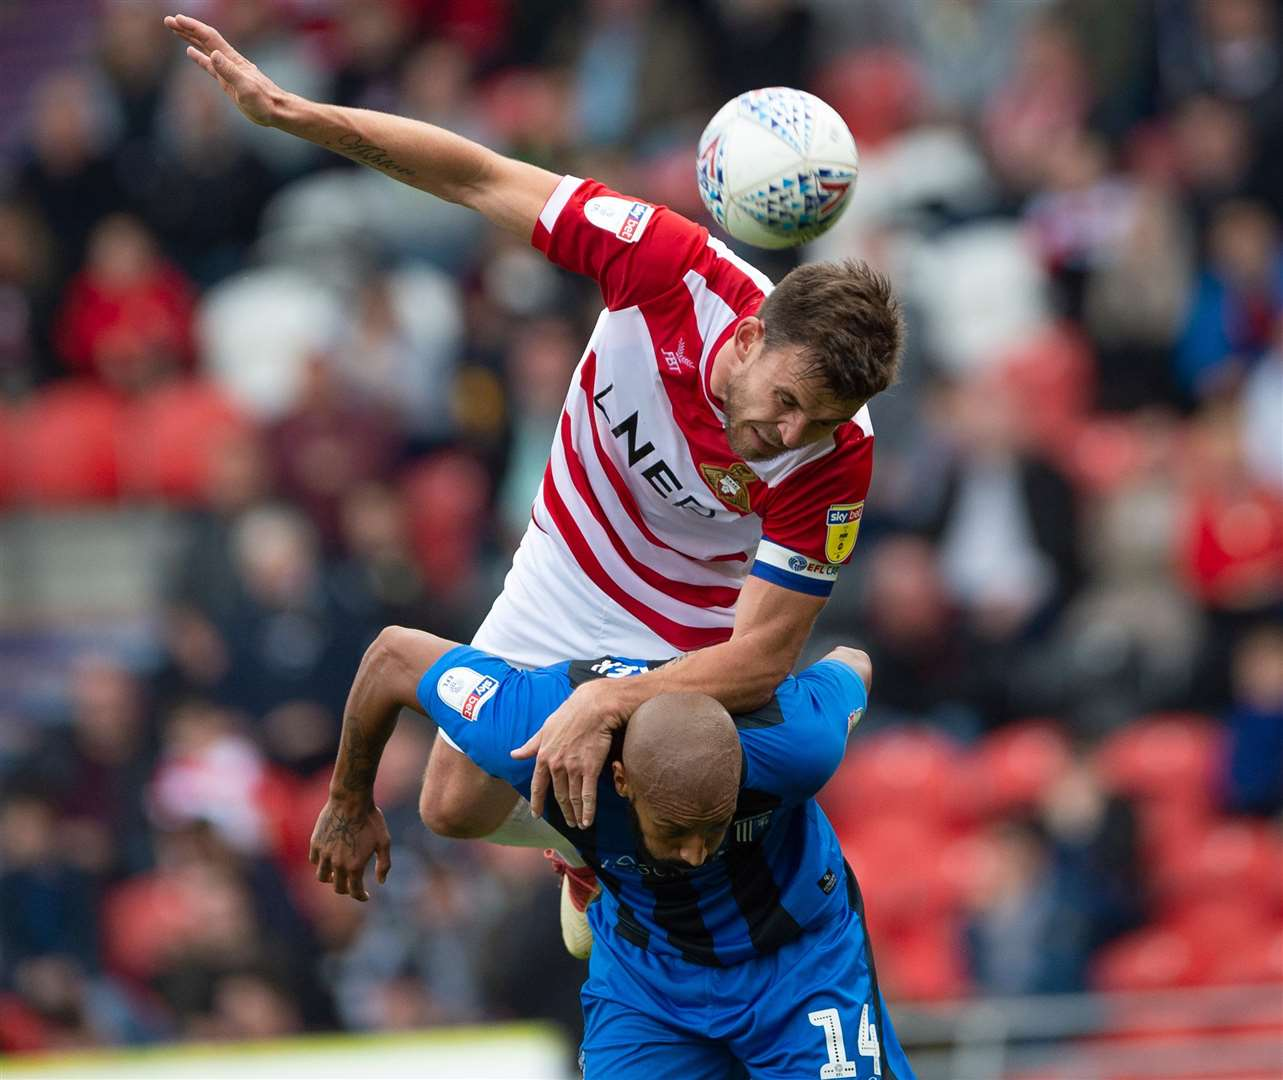 Andy Butler climbs all over Gillingham's Josh Parker. Picture: Ady Kerry